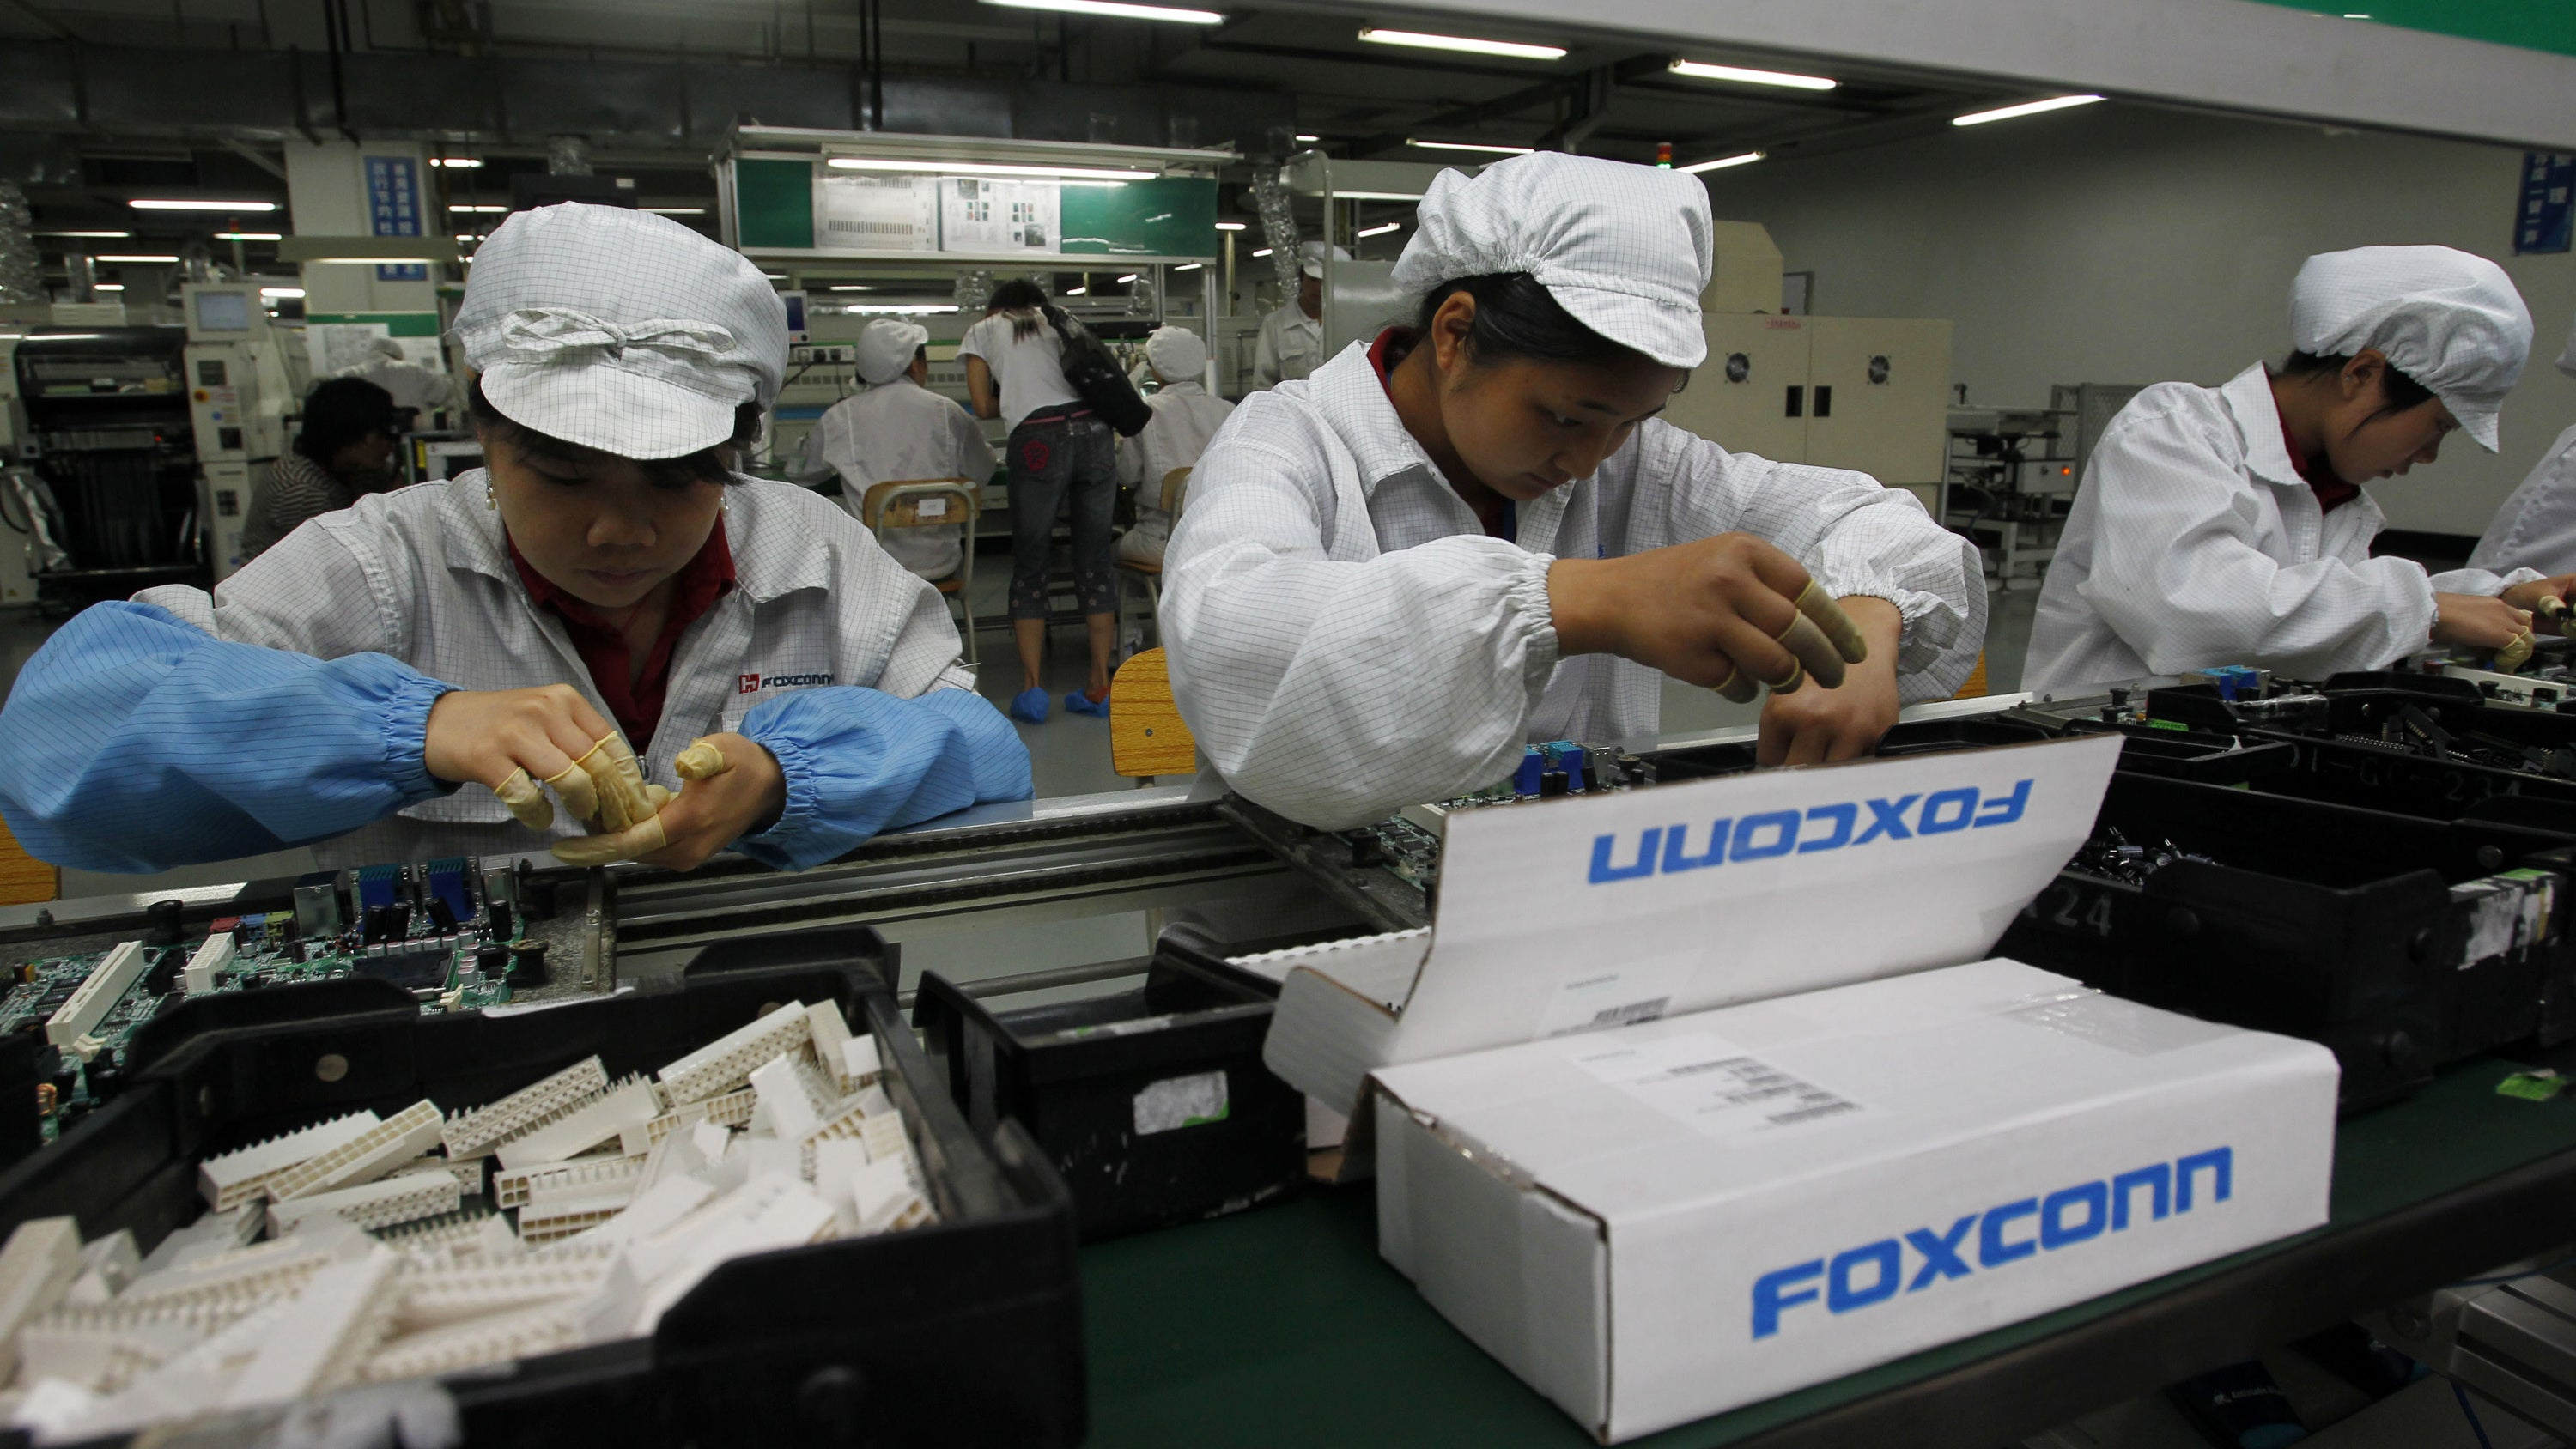 In China, students were forced to produce iPhone X